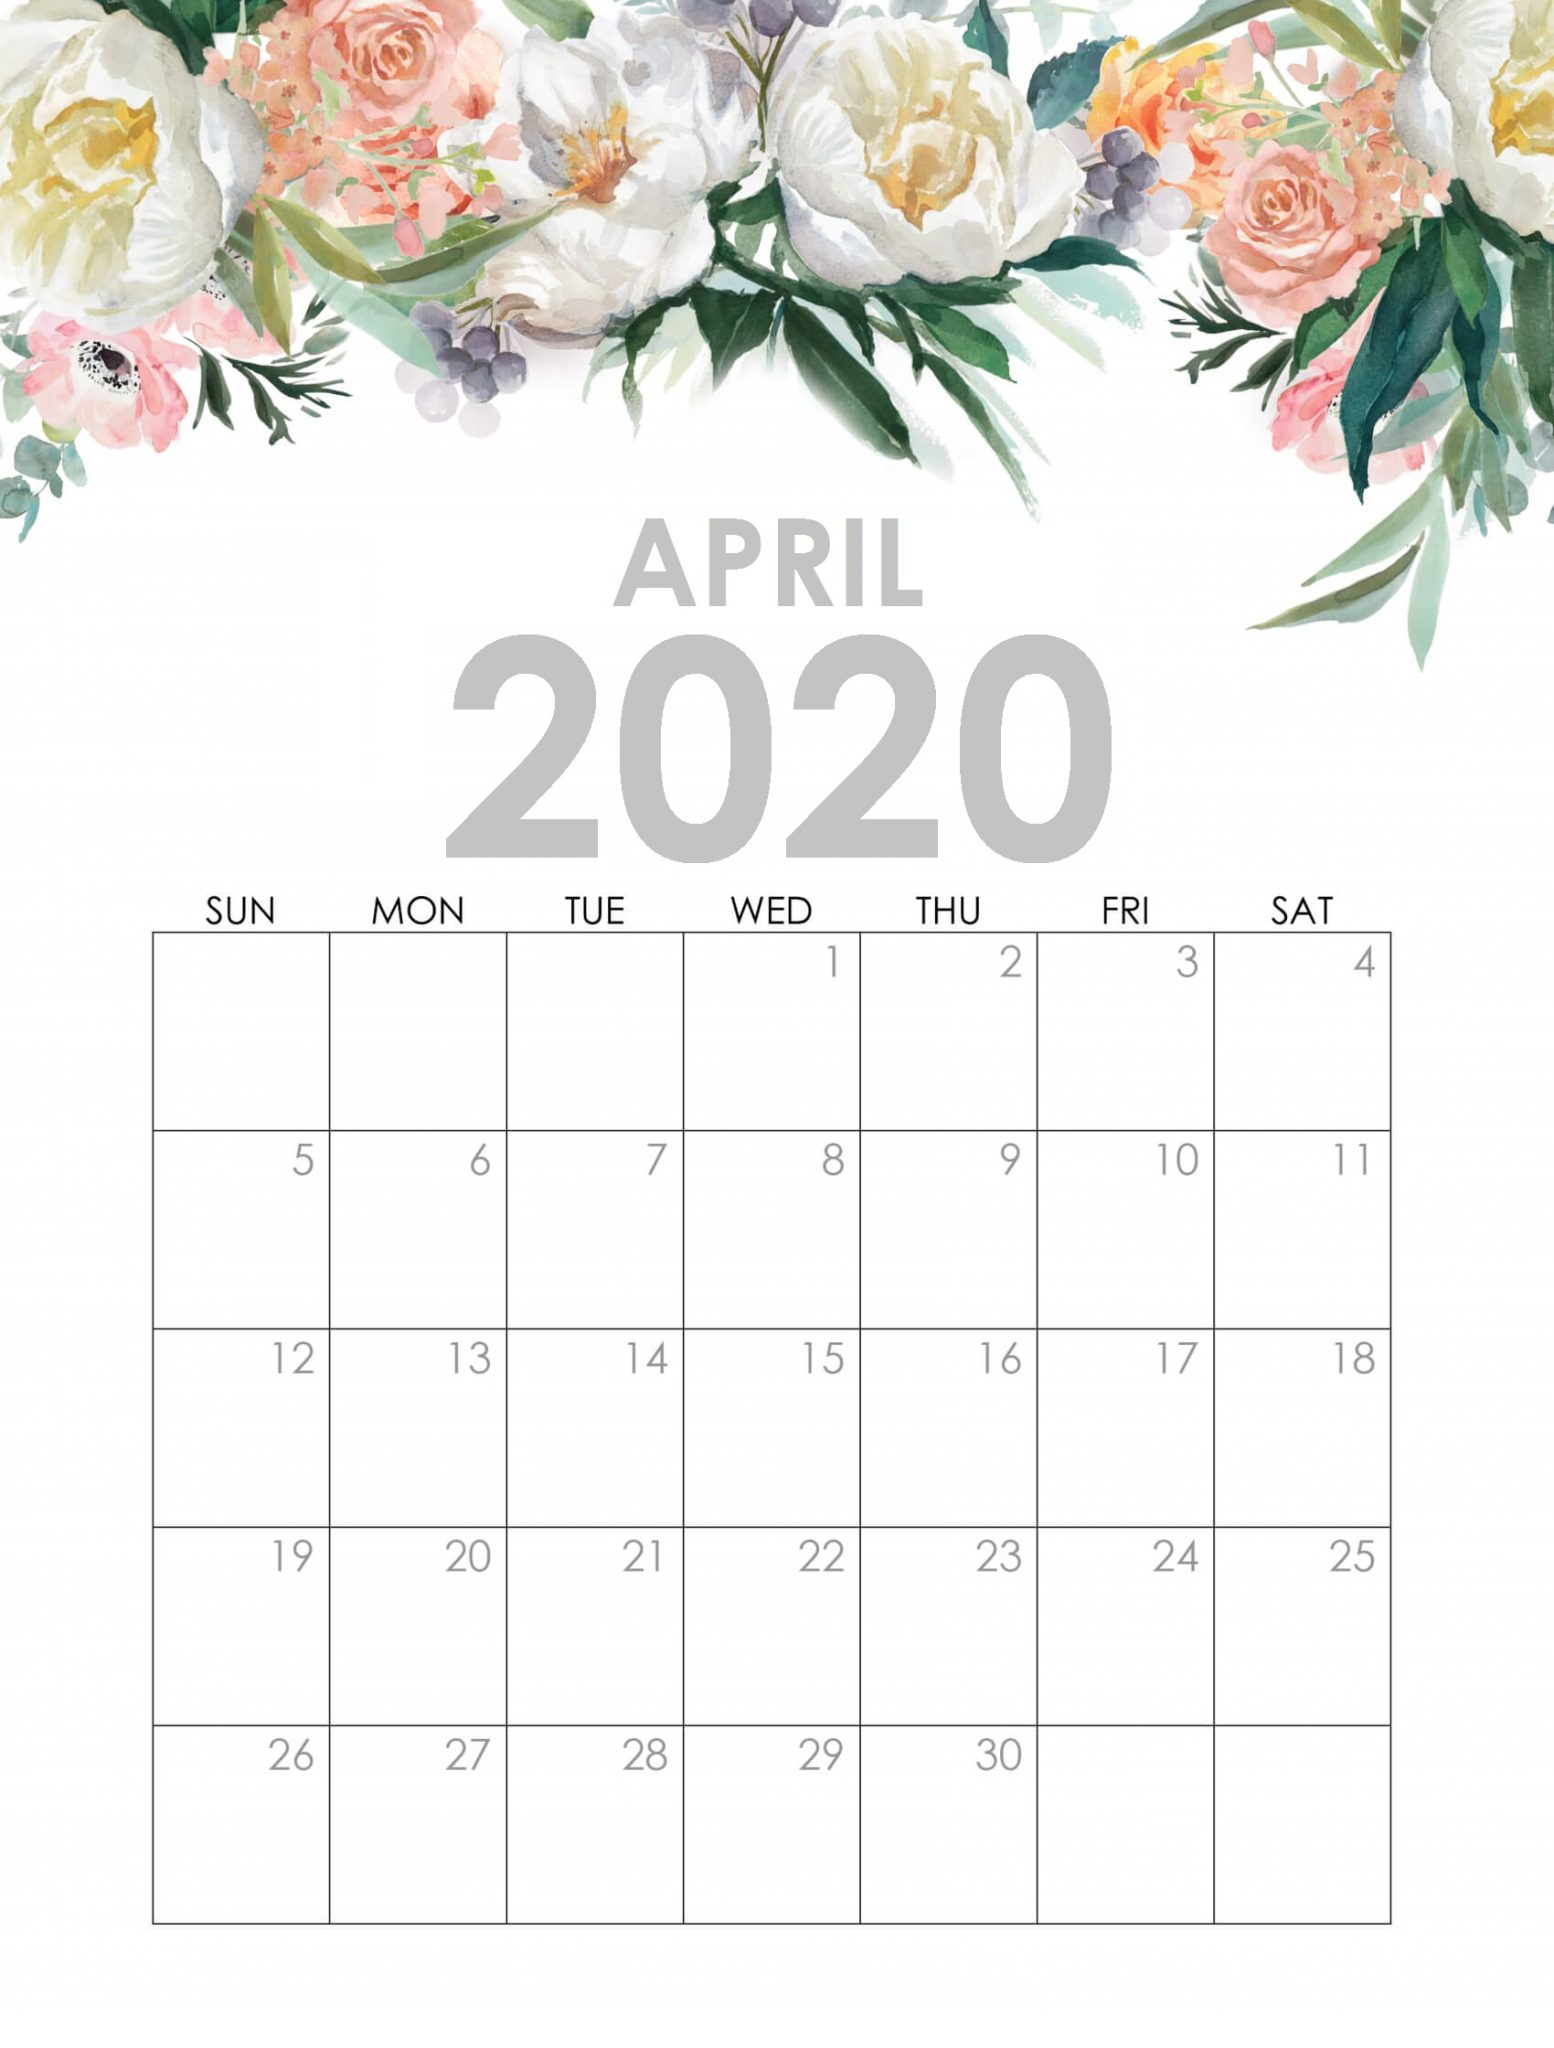 April 2020 Calendar With Flowers